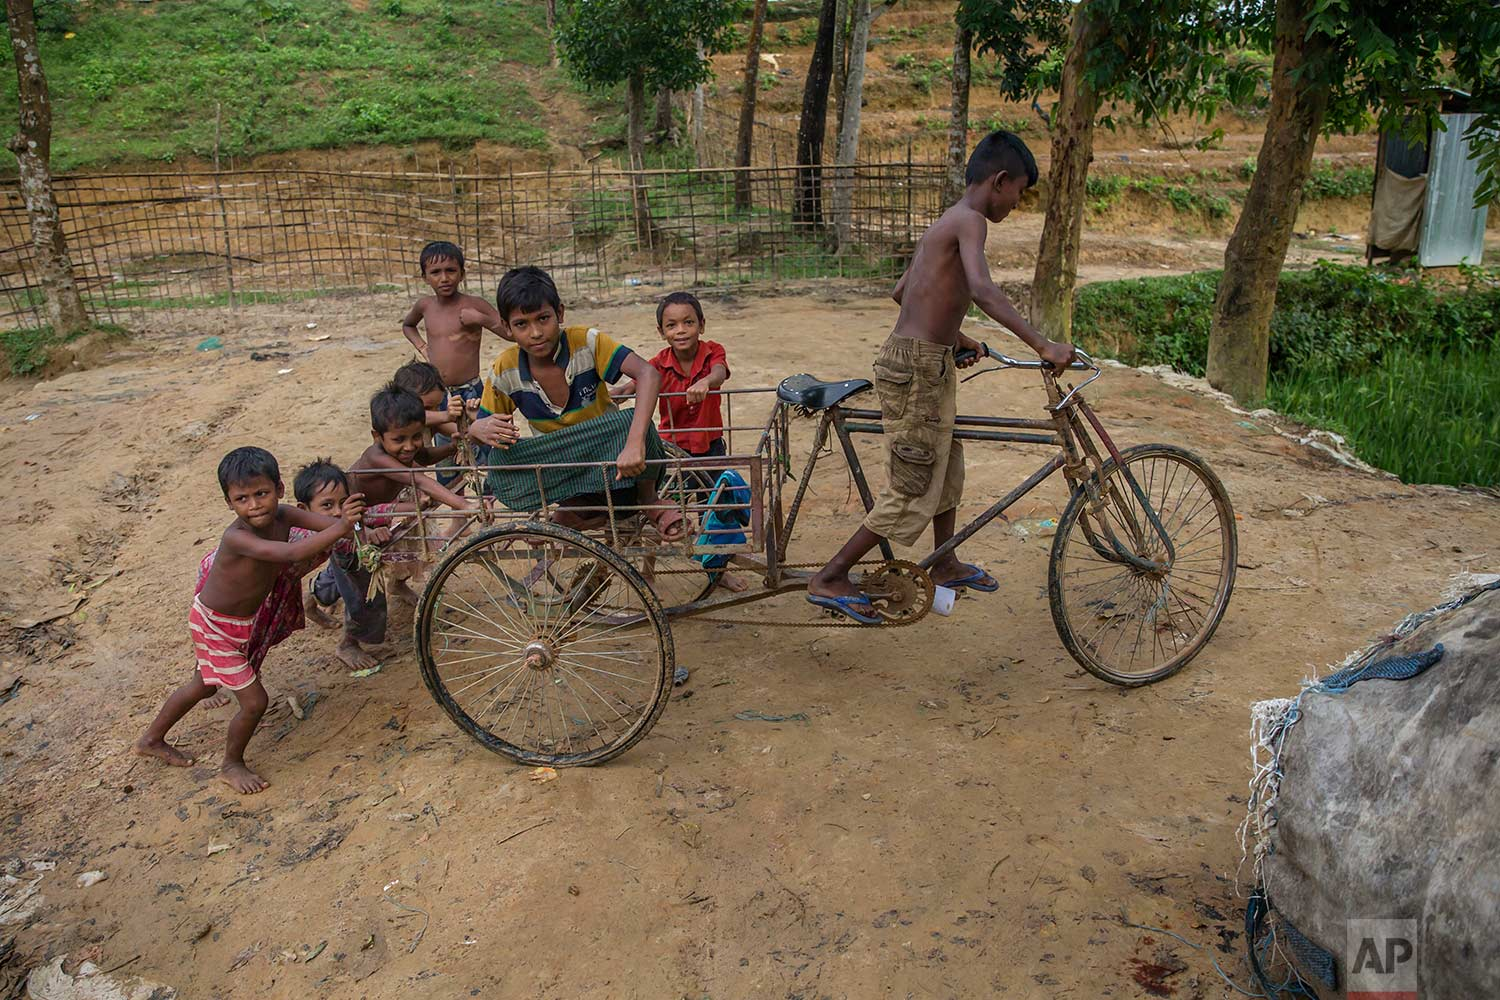 Rohingya Muslim children, who crossed over from Myanmar into Bangladesh, play with a cart in Kutupalong refugee camp, Bangladesh, Friday, Oct. 20, 2017. (AP Photo/Dar Yasin)